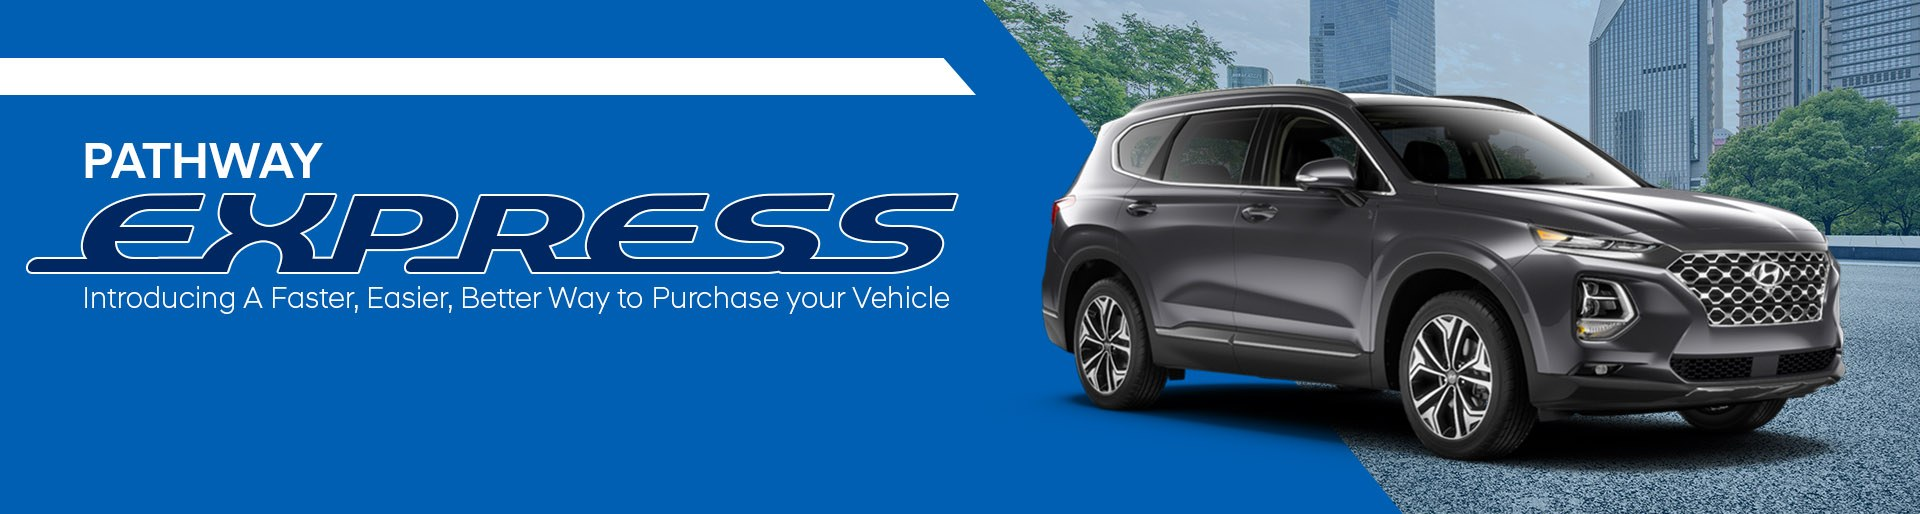 Shopping for a Hyundai has never been easier with new Express at Pathway Hyundai.